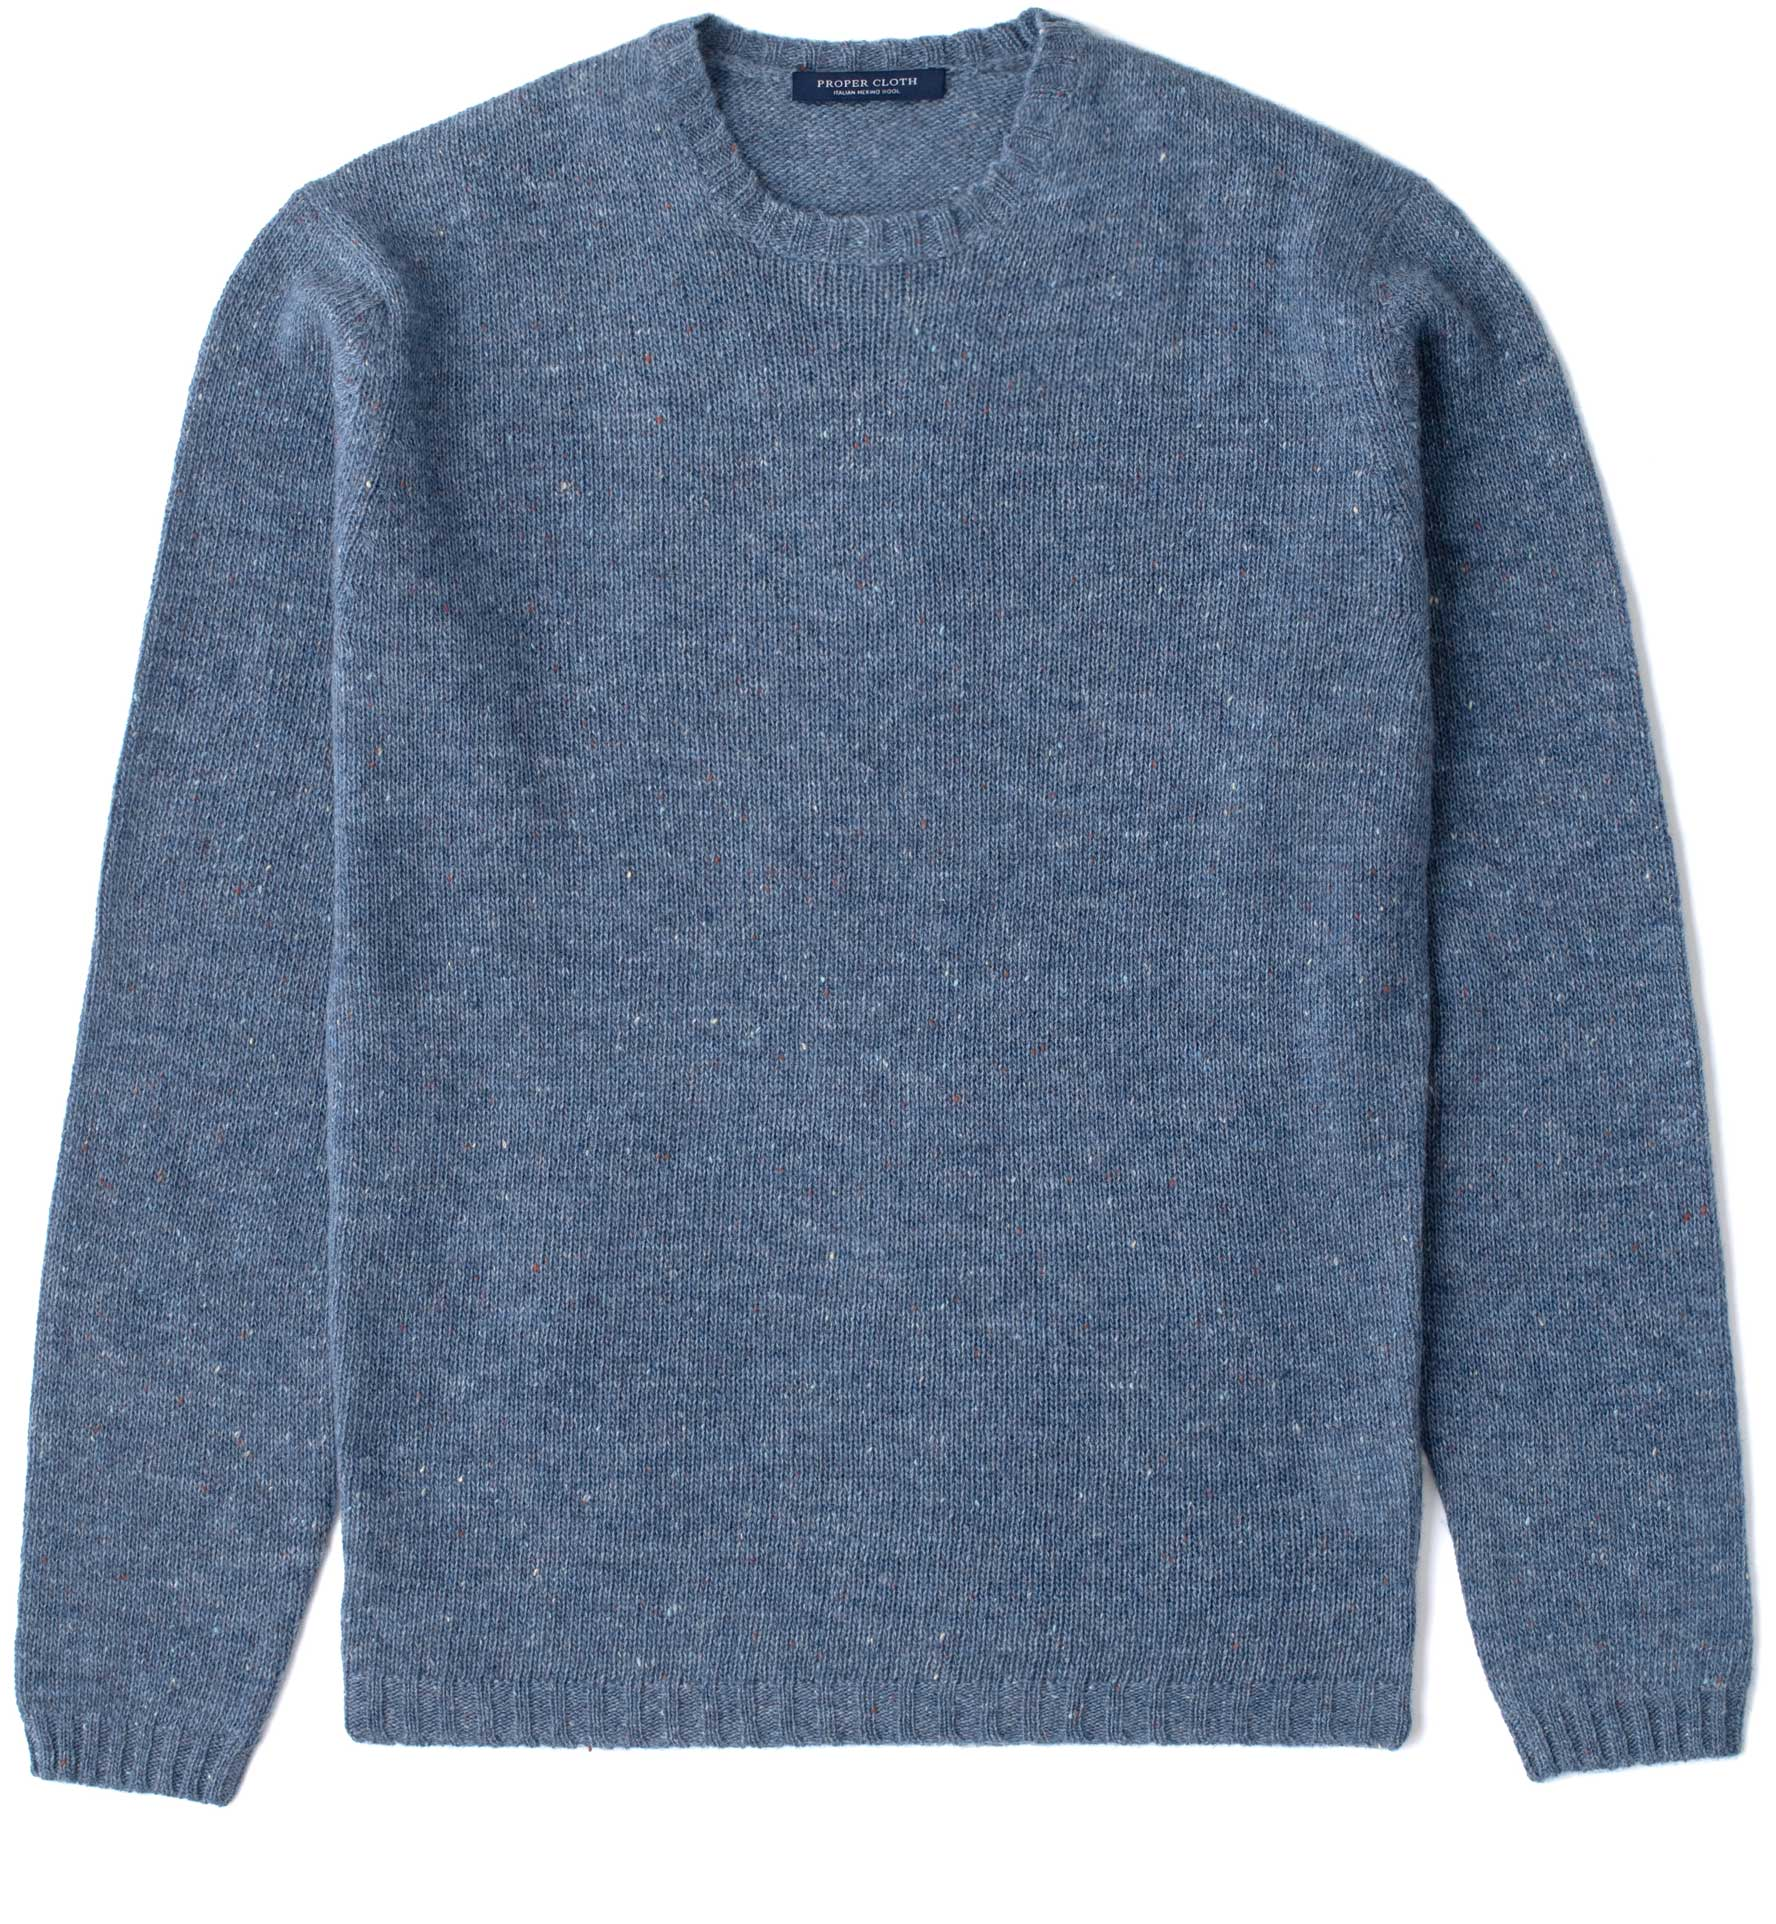 Zoom Image of Slate Donegal Lambswool Sweater